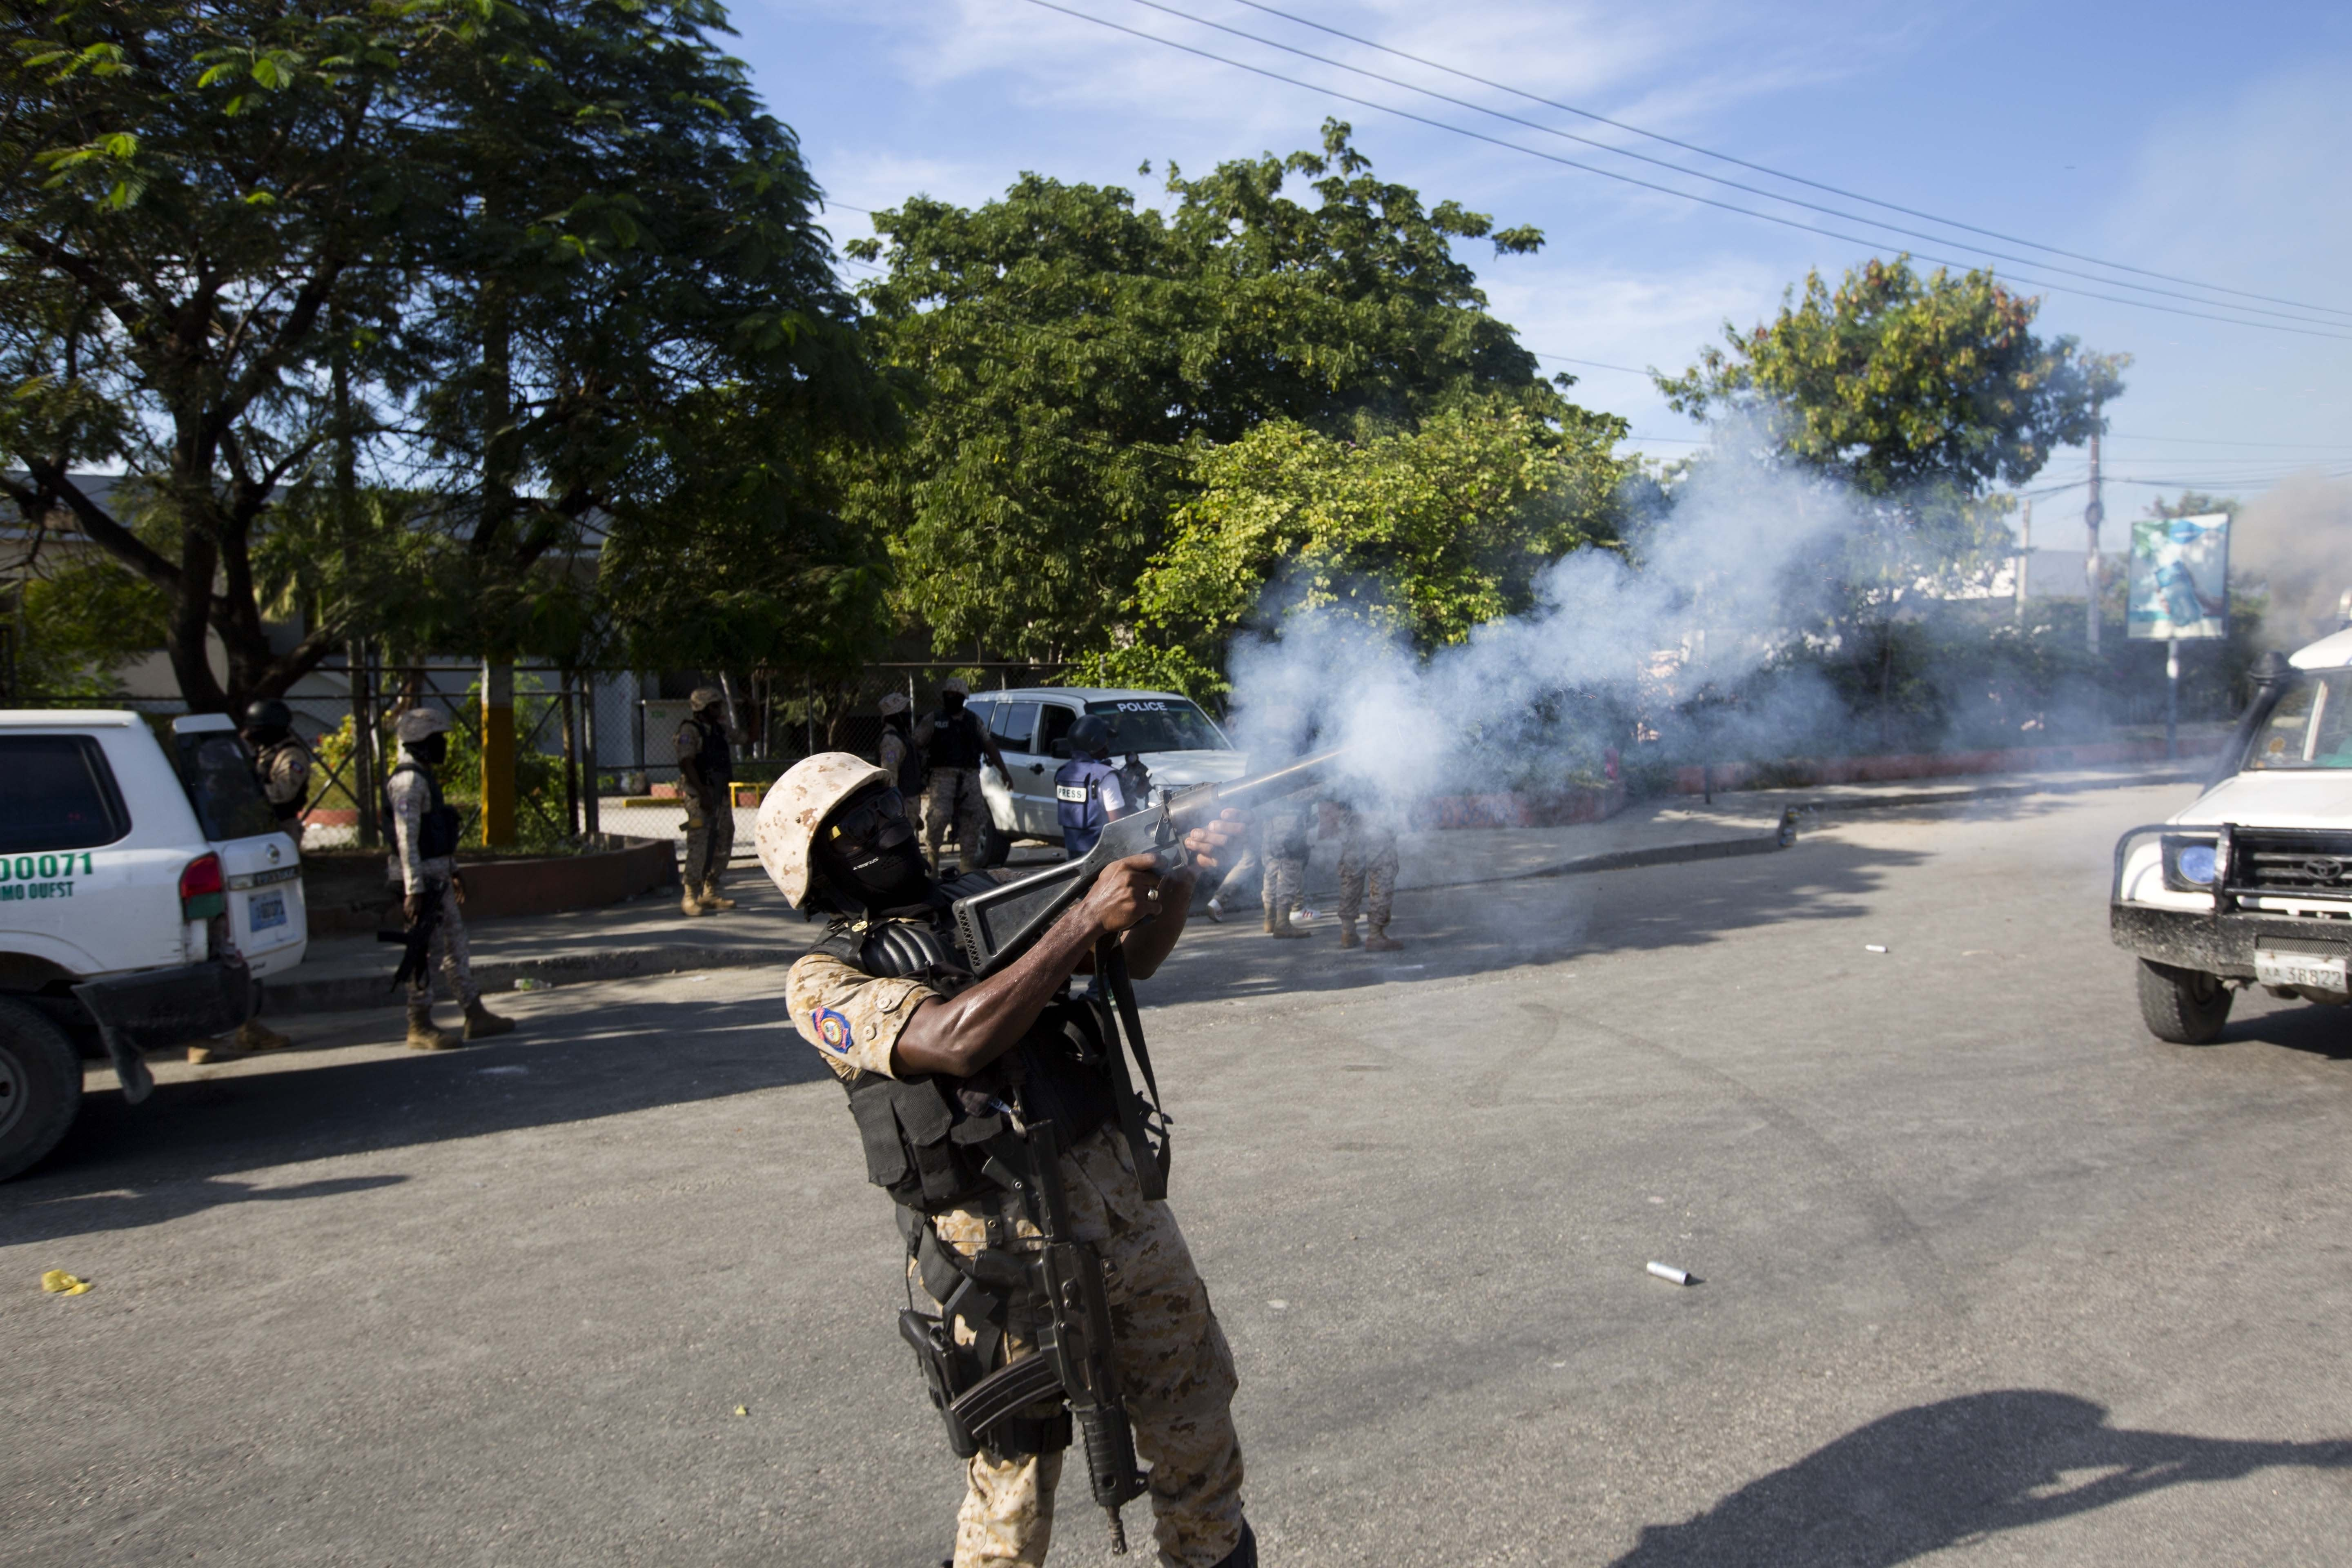 Police disperse the crowd with tear gas, away from the site where a car that careened out of control hit a group of persons in Port-au-Prince, Haiti, Wednesday, Nov. 21, 2018. According to the police the car, that was set alight by protesters, lost a wheel when it lost control and killed six persons on the street. The deaths come as Haiti faces a fourth day of protests to demand that President Jovenel Moise resign for not investigating allegations of corruption in the previous government over Petrocaribe, a Venezuelan subsidized energy program. (AP Photo/Dieu Nalio Chery)